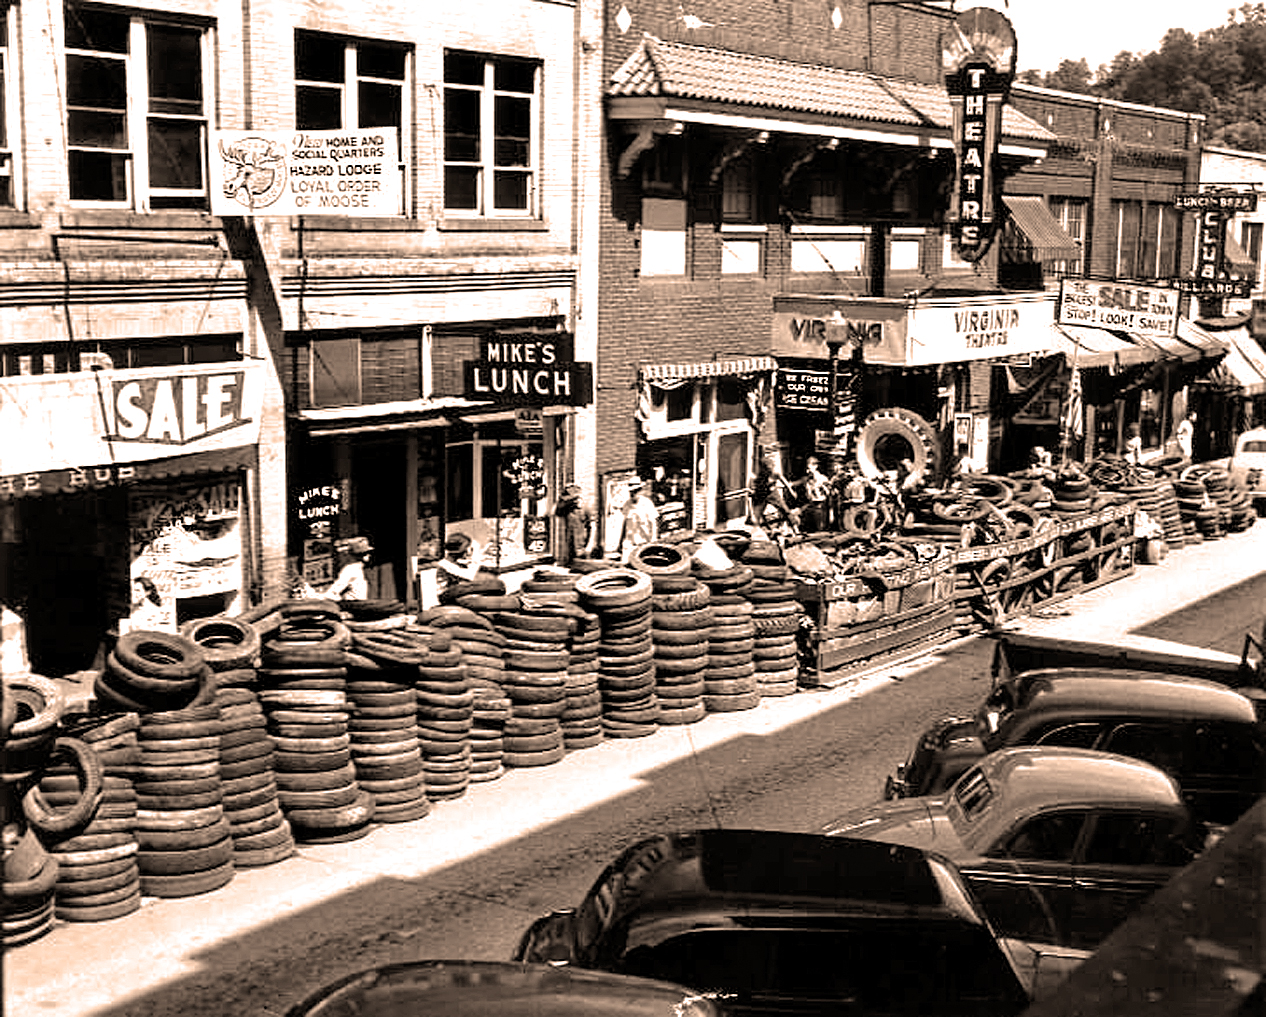 Rounding up Tires - 1942